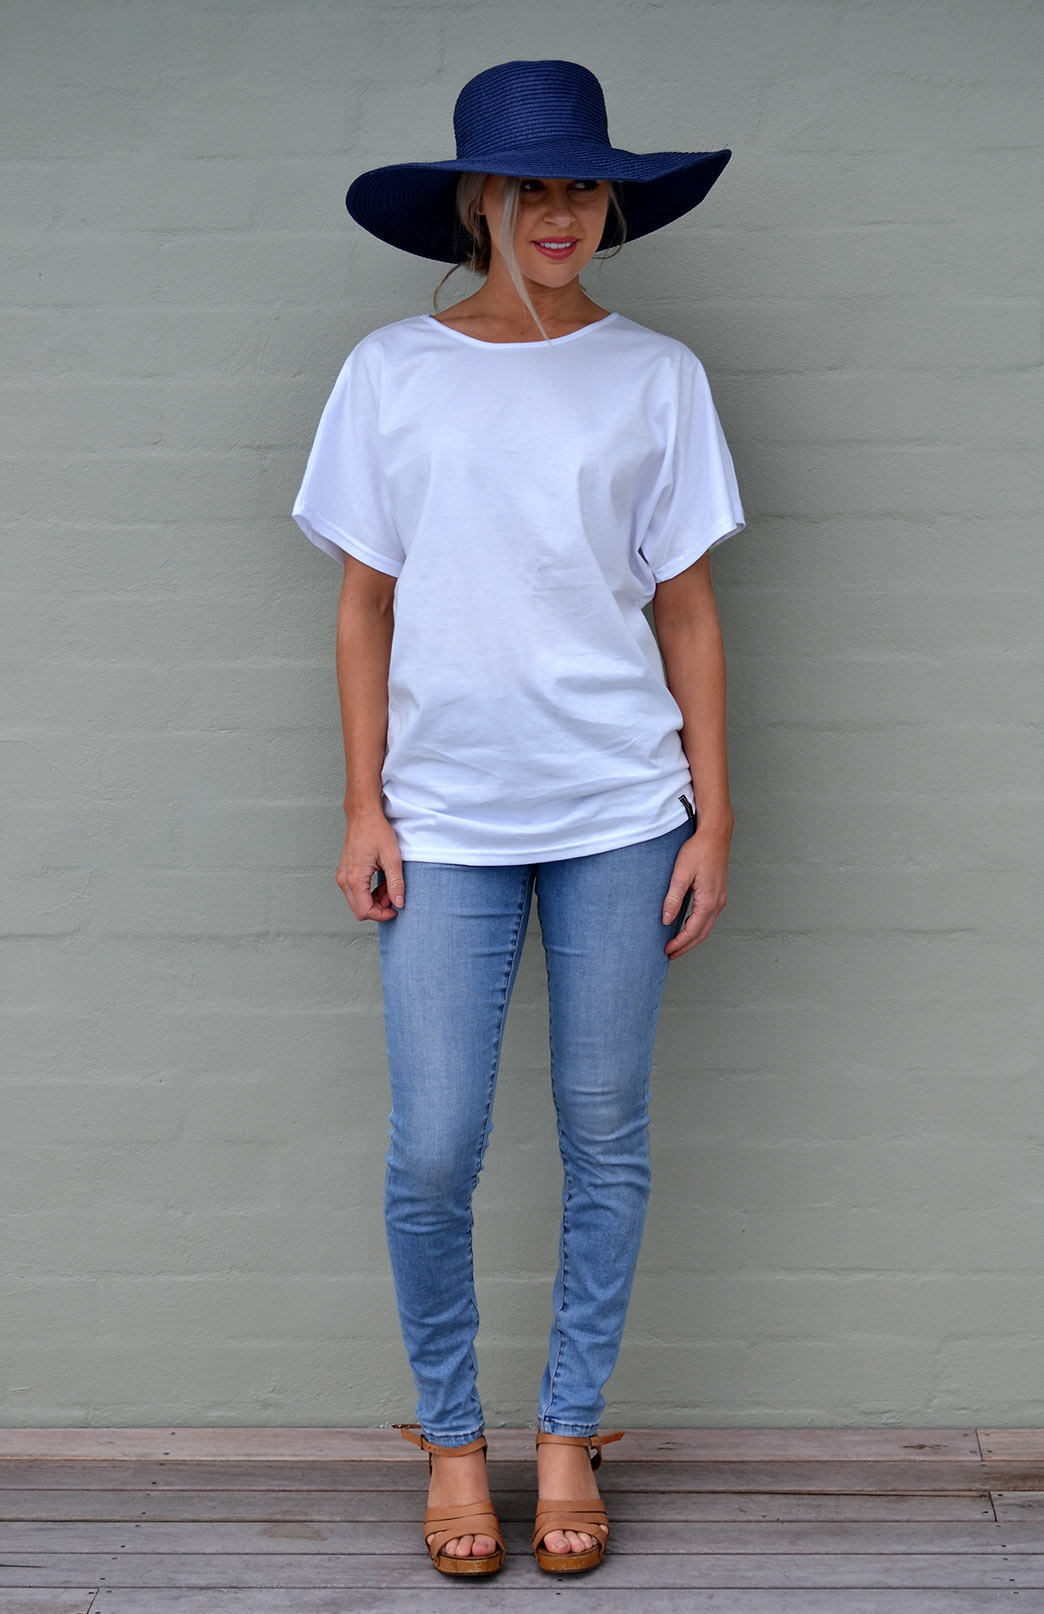 Loose T-Shirt - Cotton - Women's White Cotton Loose Summer T-Shirt - Smitten Merino Tasmania Australia